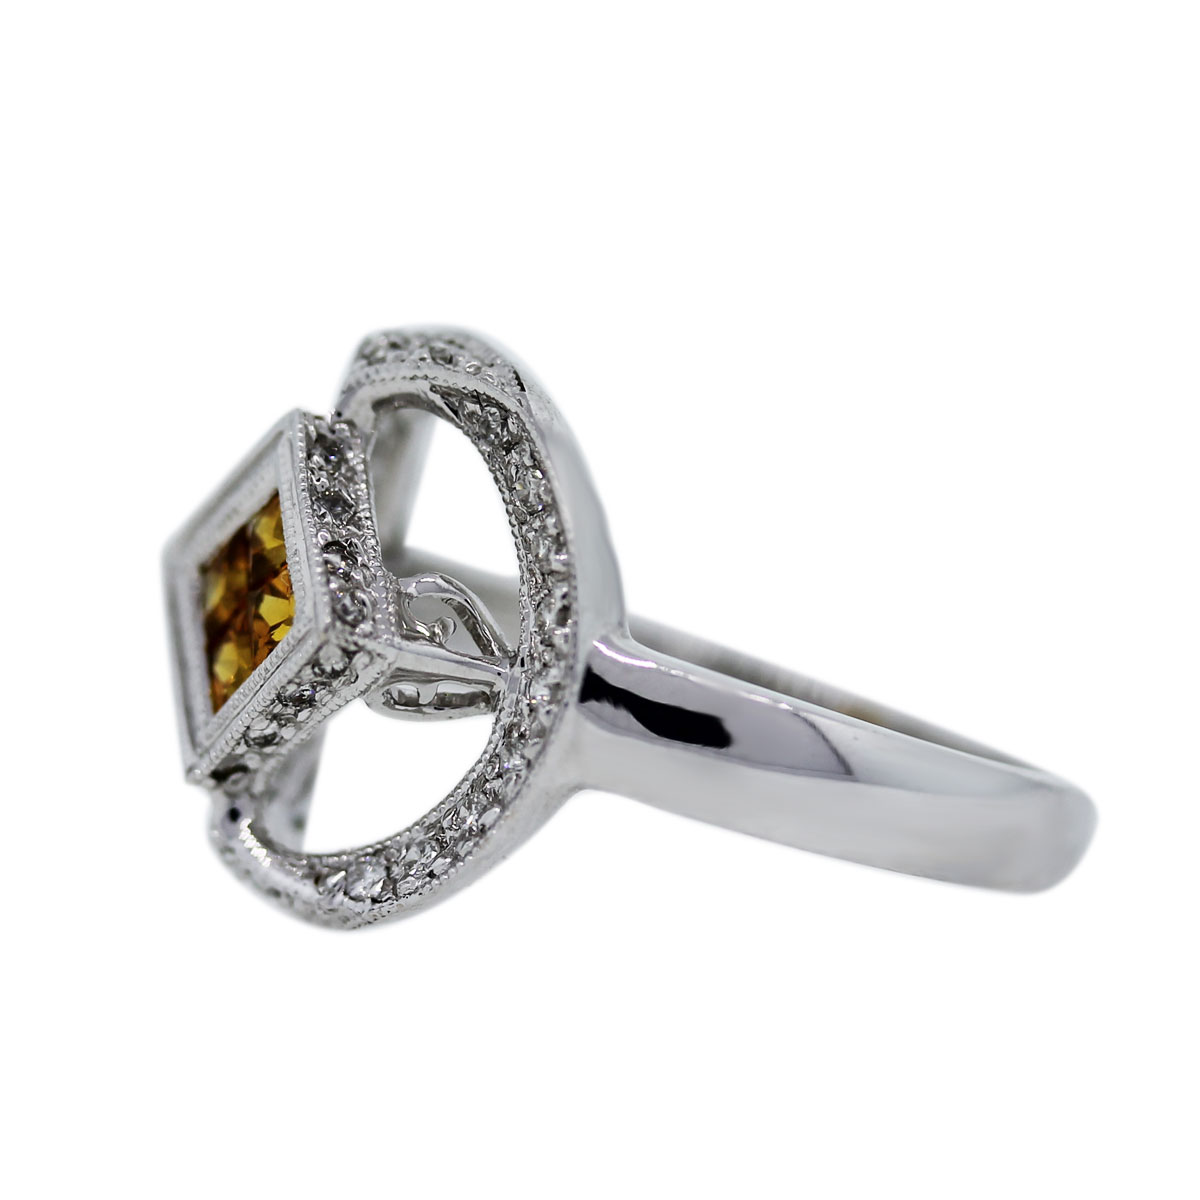 Invisibly Set Yellow Sapphire Ring